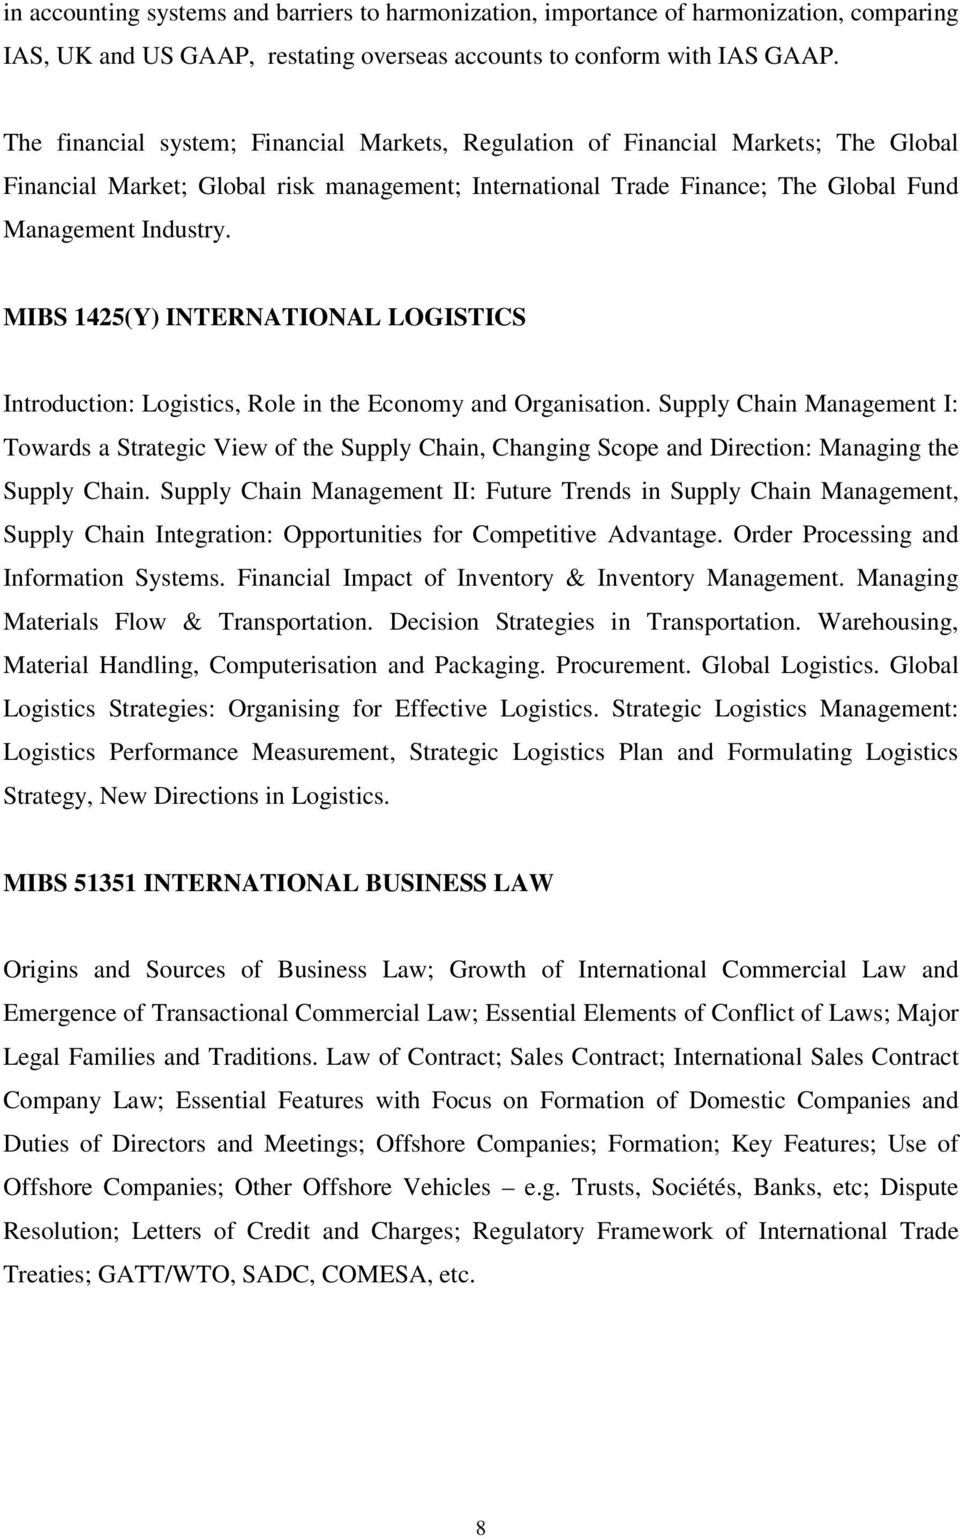 MIBS 1425(Y) INTERNATIONAL LOGISTICS Introduction: Logistics, Role in the Economy and Organisation.